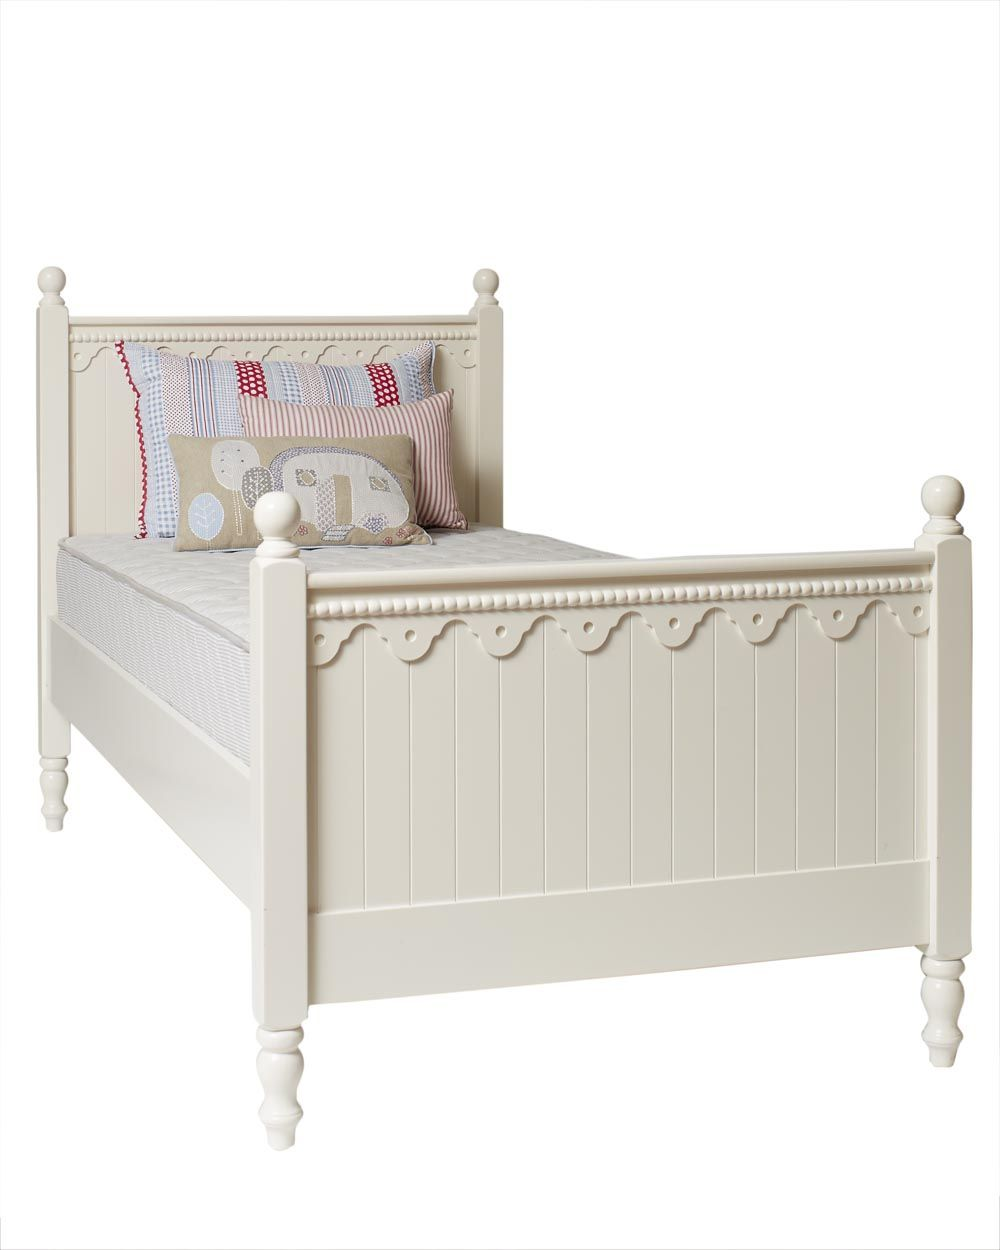 PROVIDENCE SINGLE BED | Furniture | Pinterest